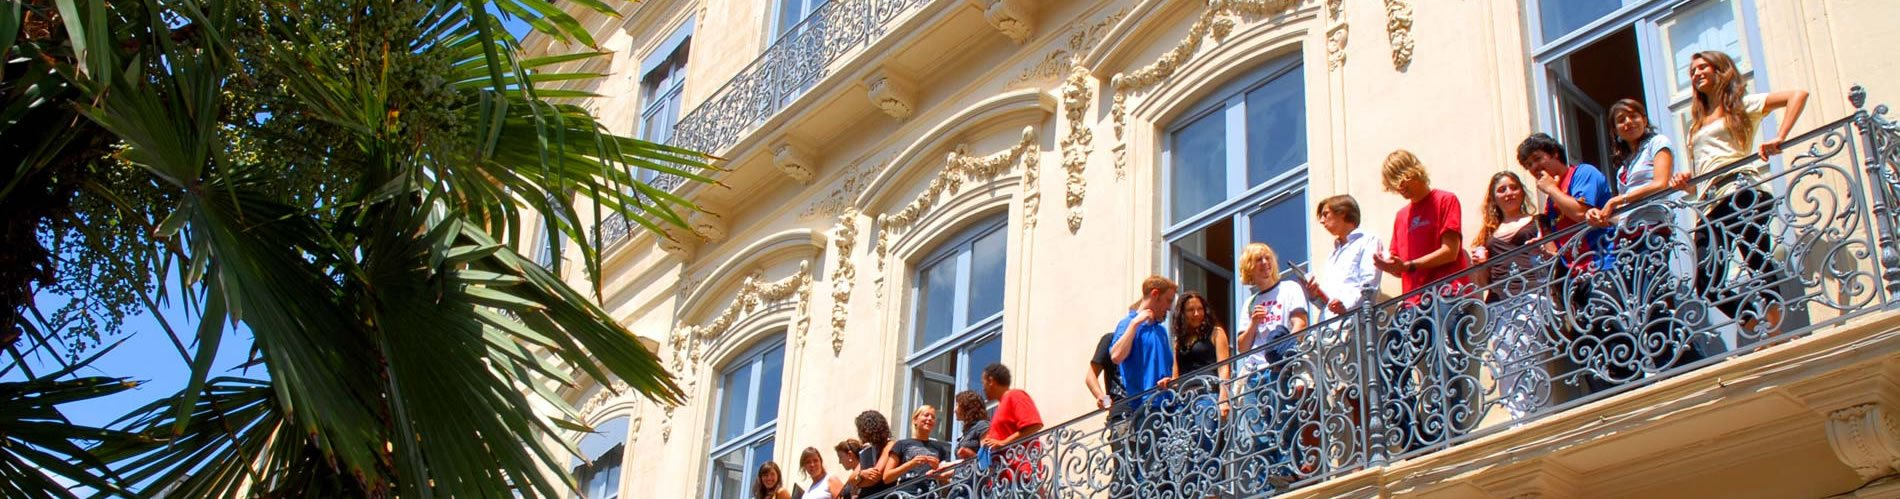 French language students on a balcony in Montpellier taking in the sunshine